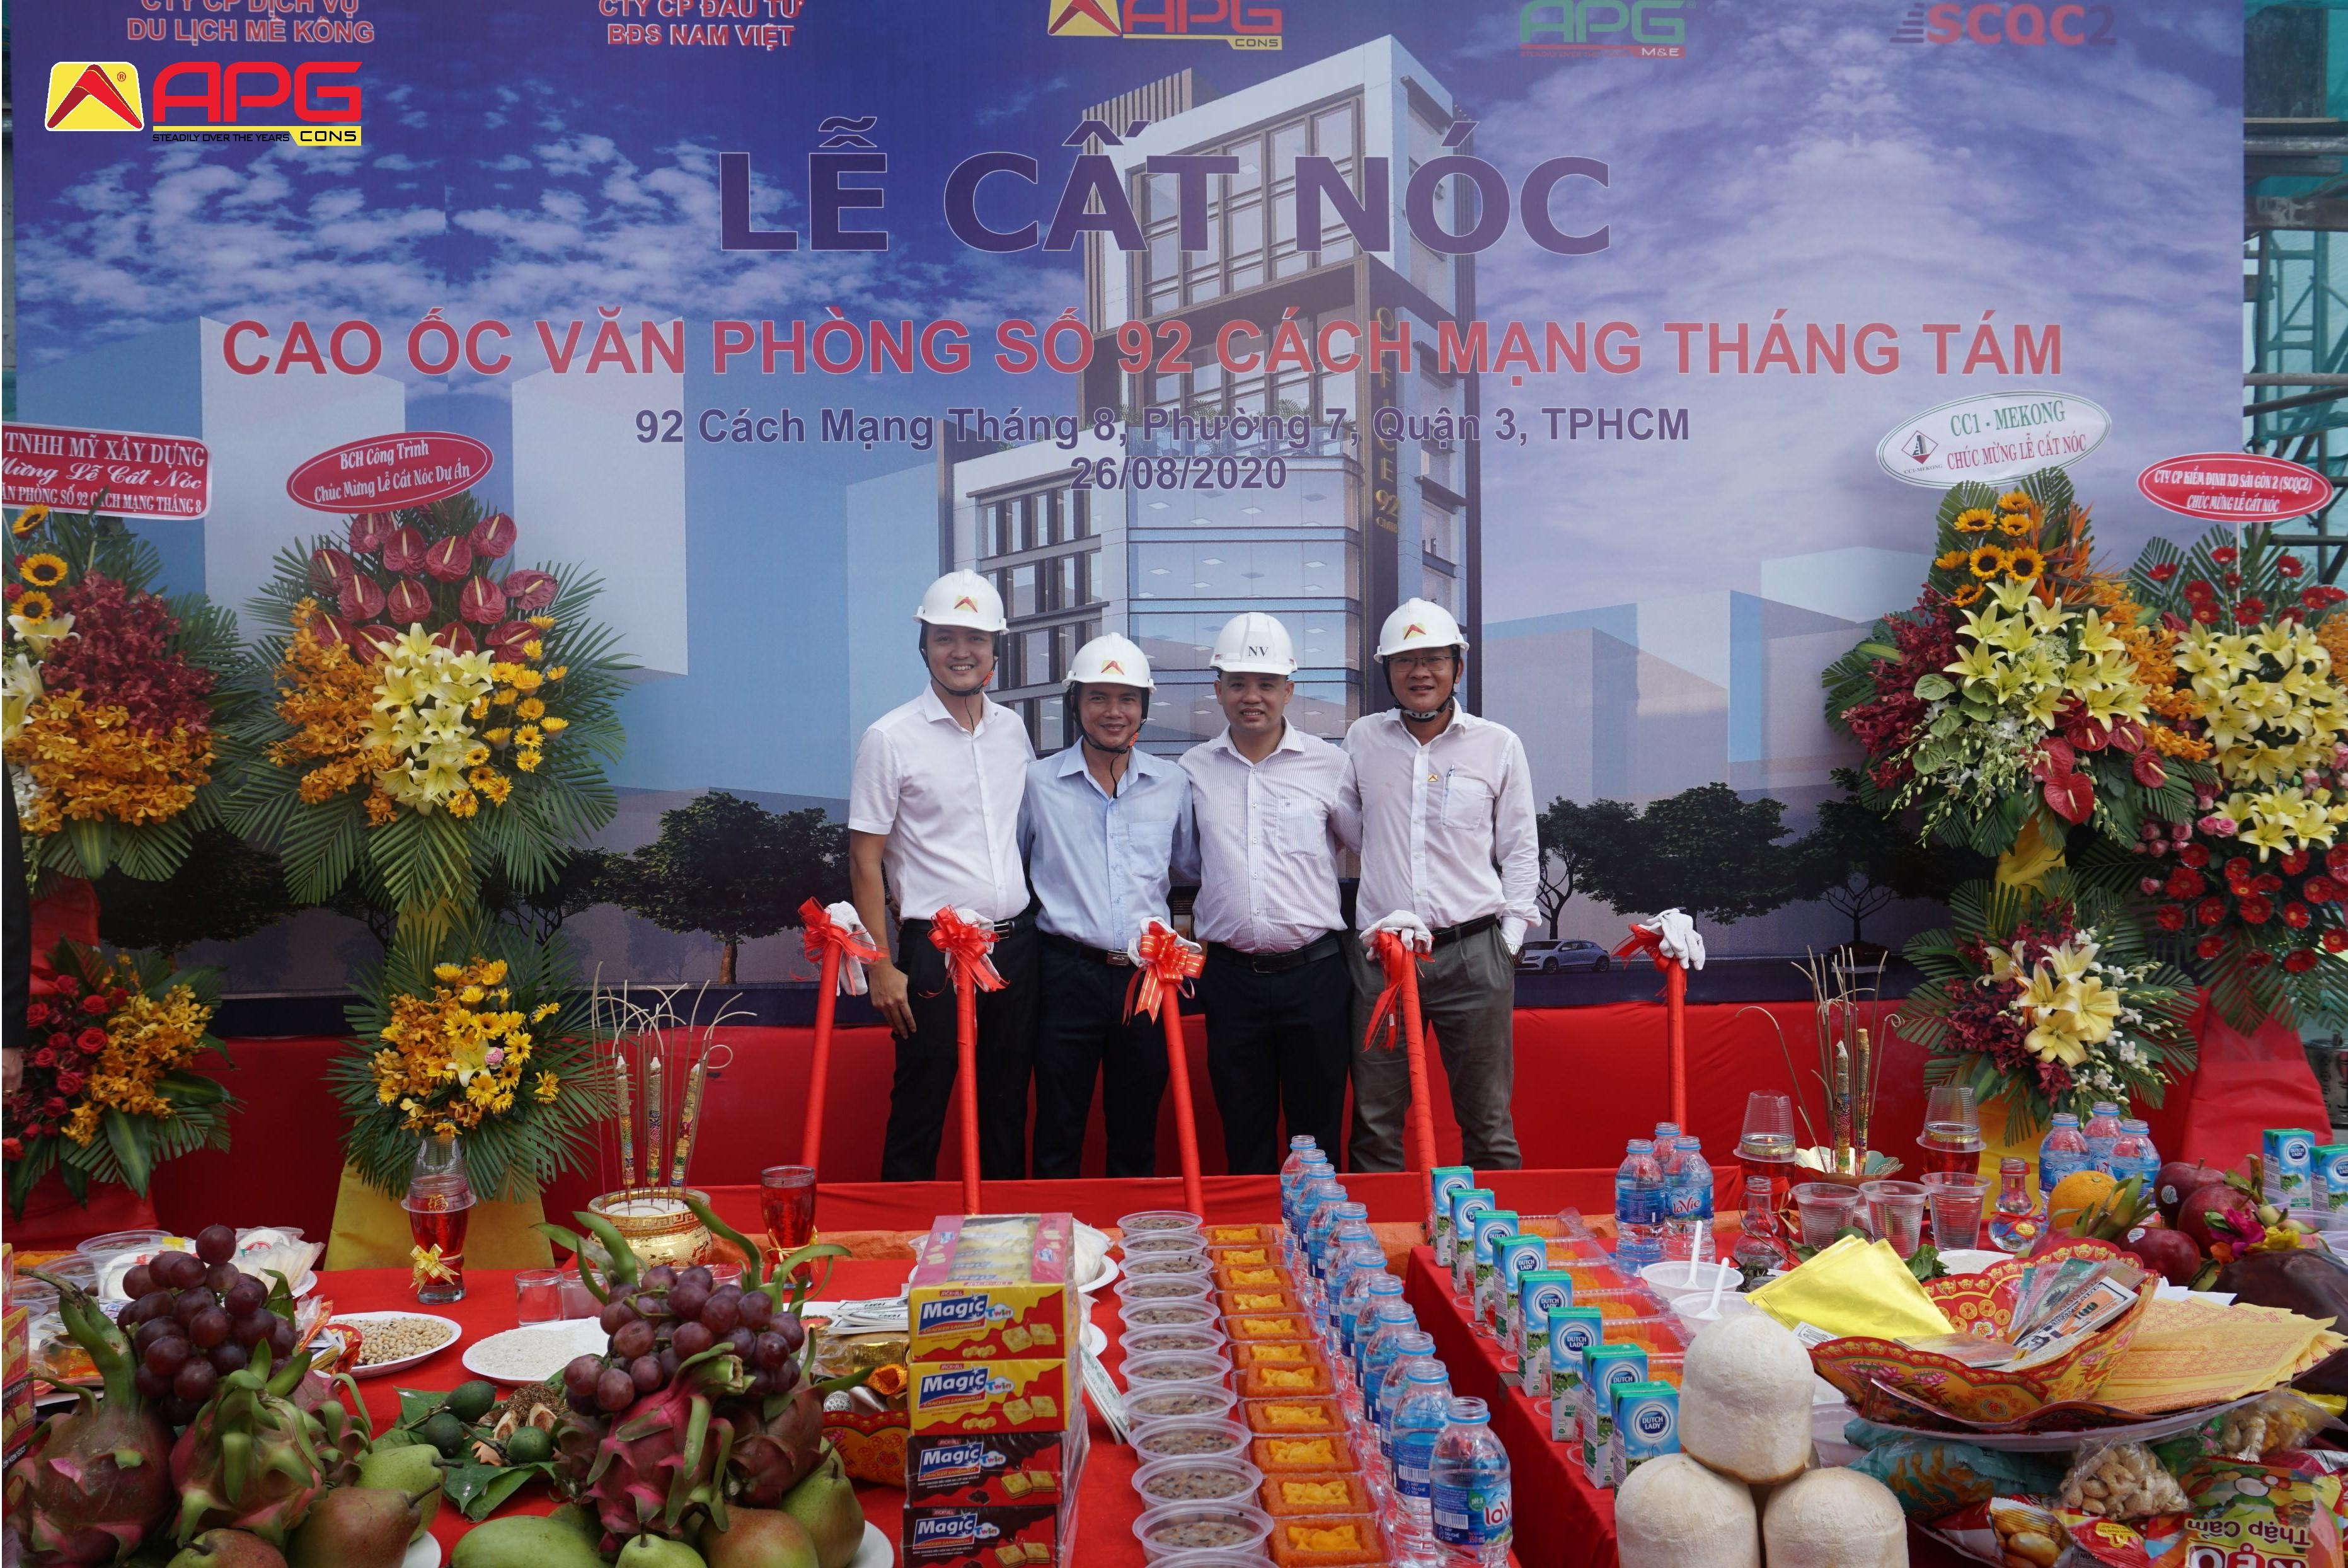 The topping out ceremony of No. 92 Cach Mang Thang 8 office building Project